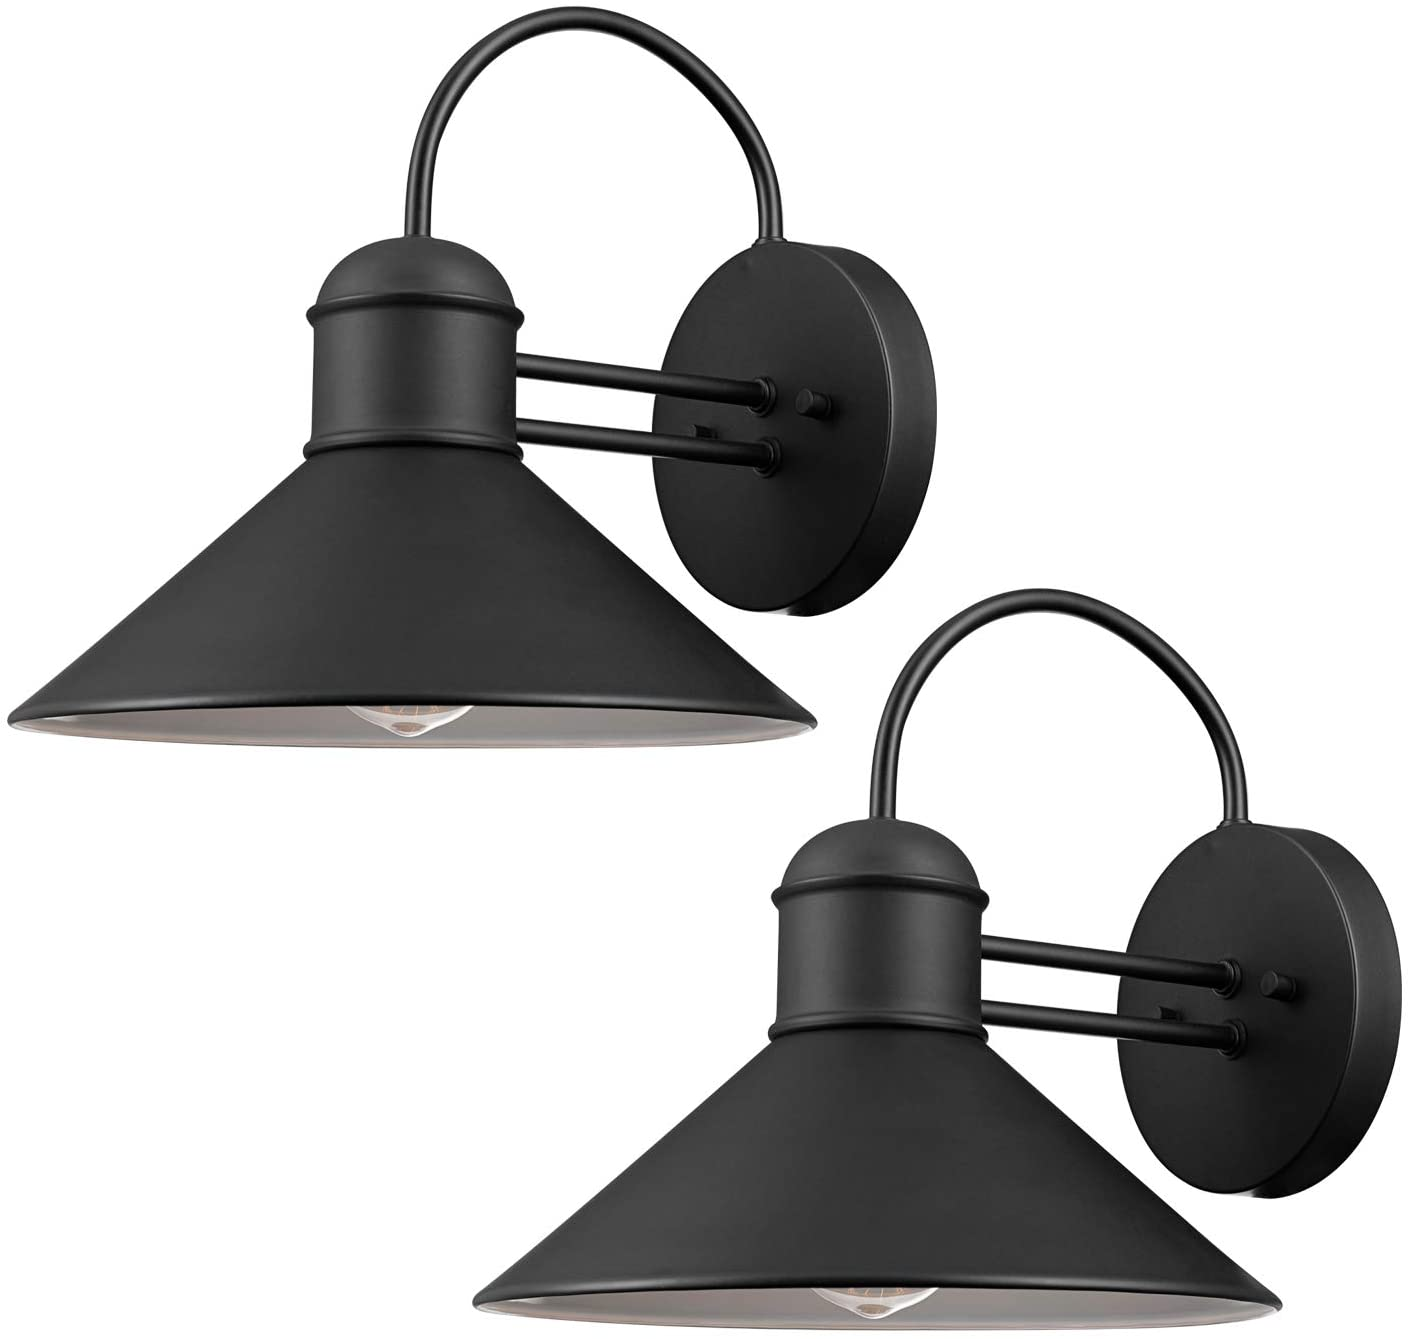 Wall light for exterior use